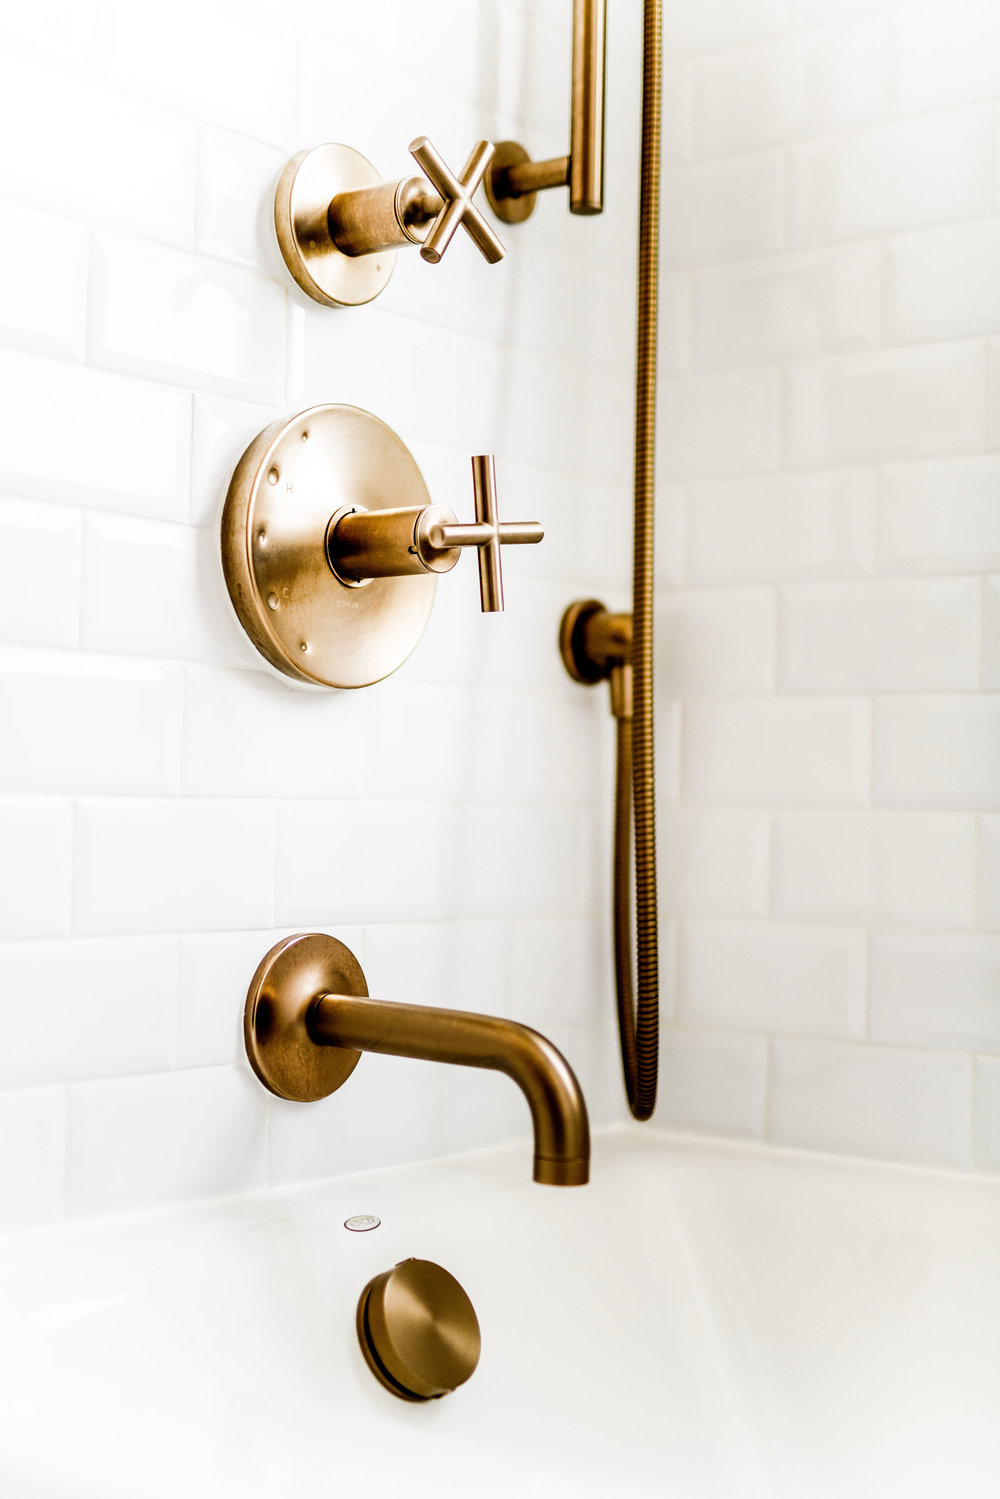 subway-tile-shower-kohler-purist-1